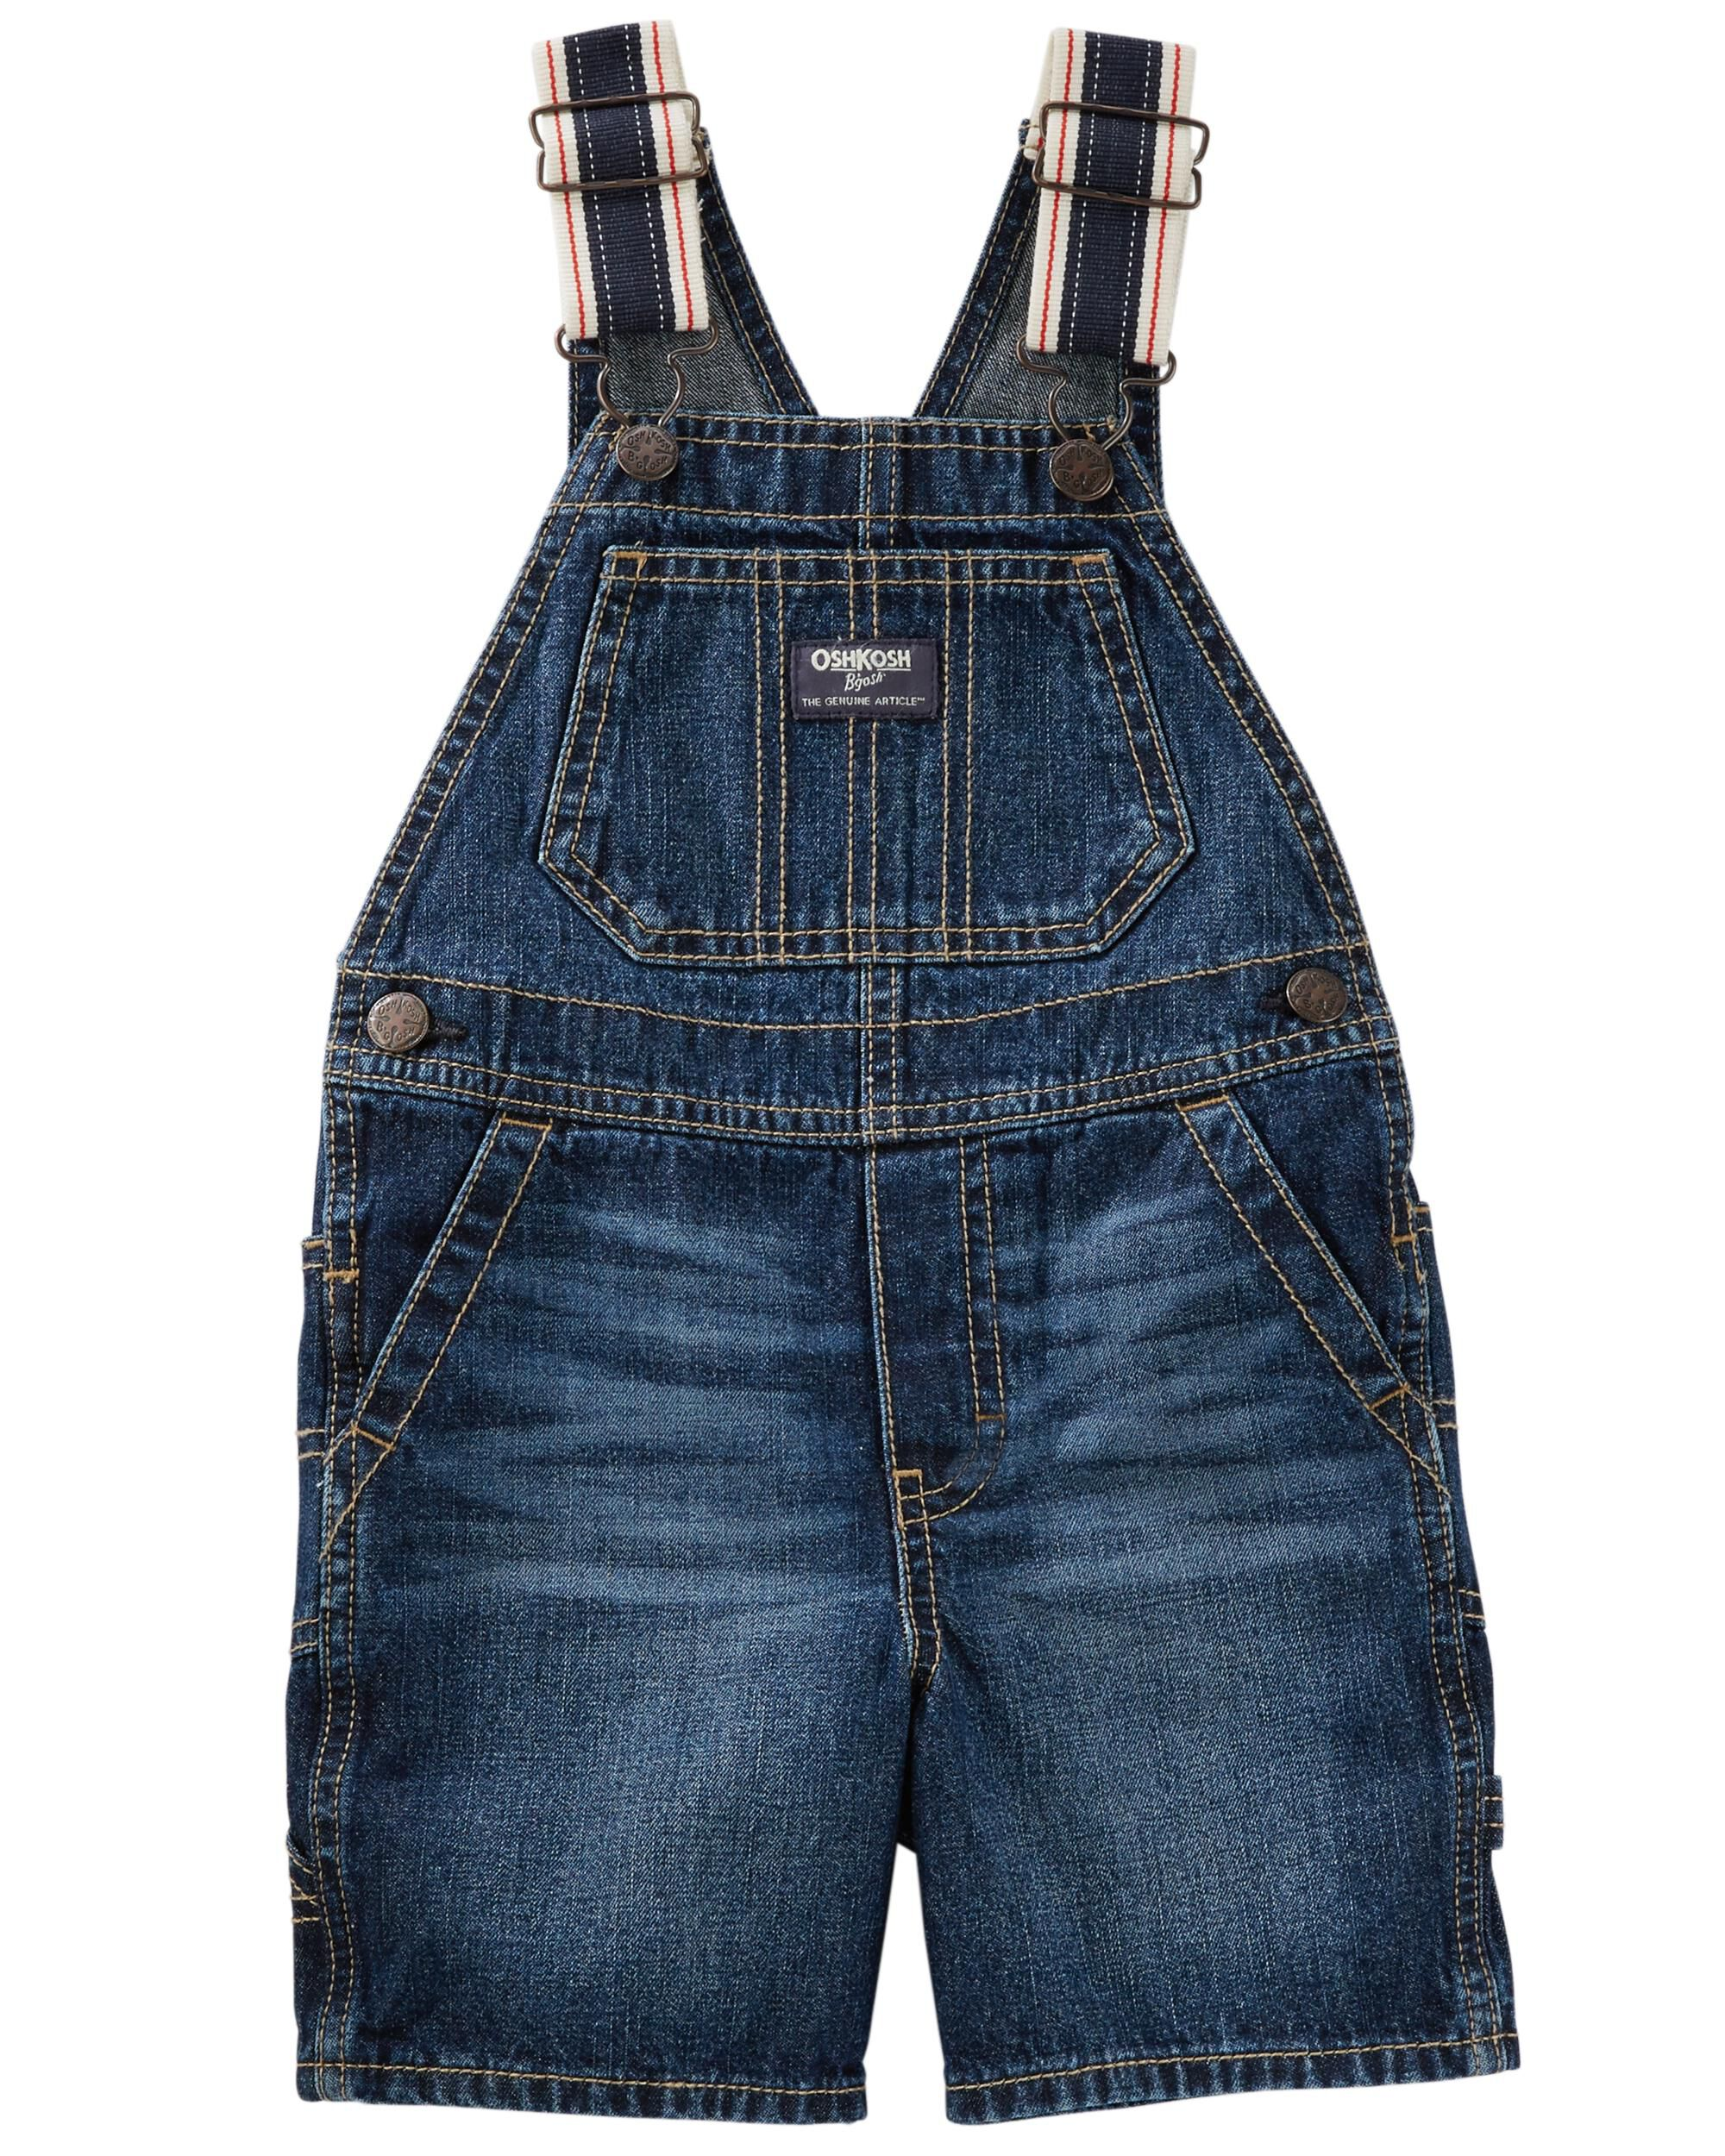 Practical Baby Toddler Kids Girls Denim Overalls Suspender Bib Pants Short Trousers 1-6t Clothing Sets